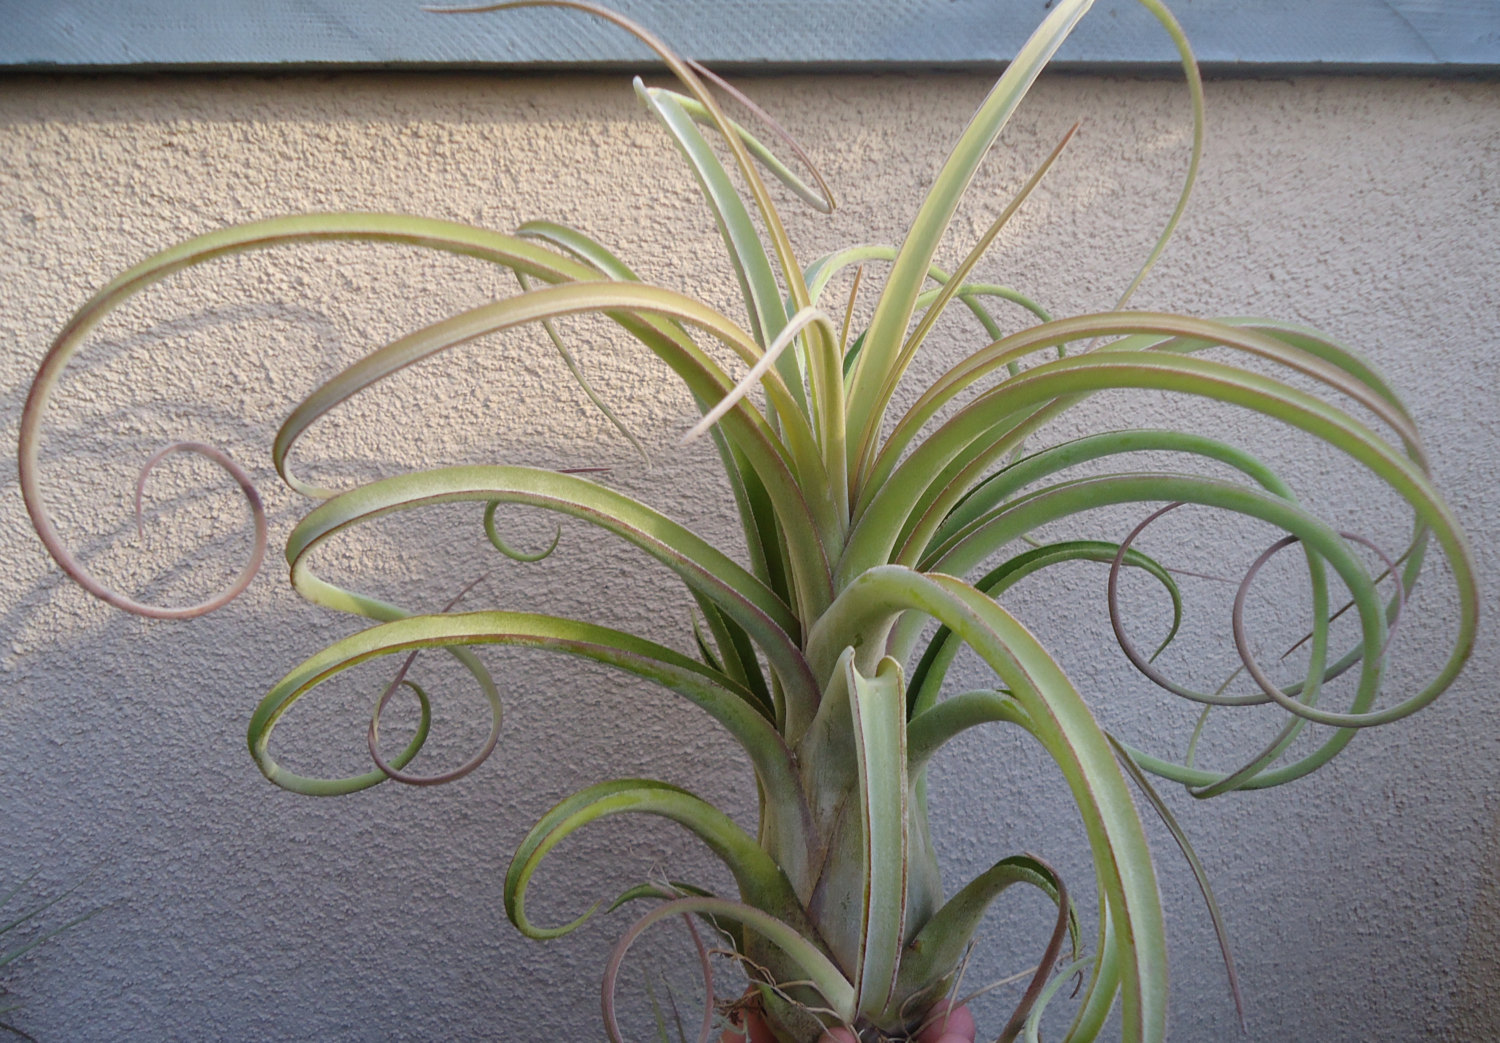 Air plant hybrid from Etsy shop CTS Airplants